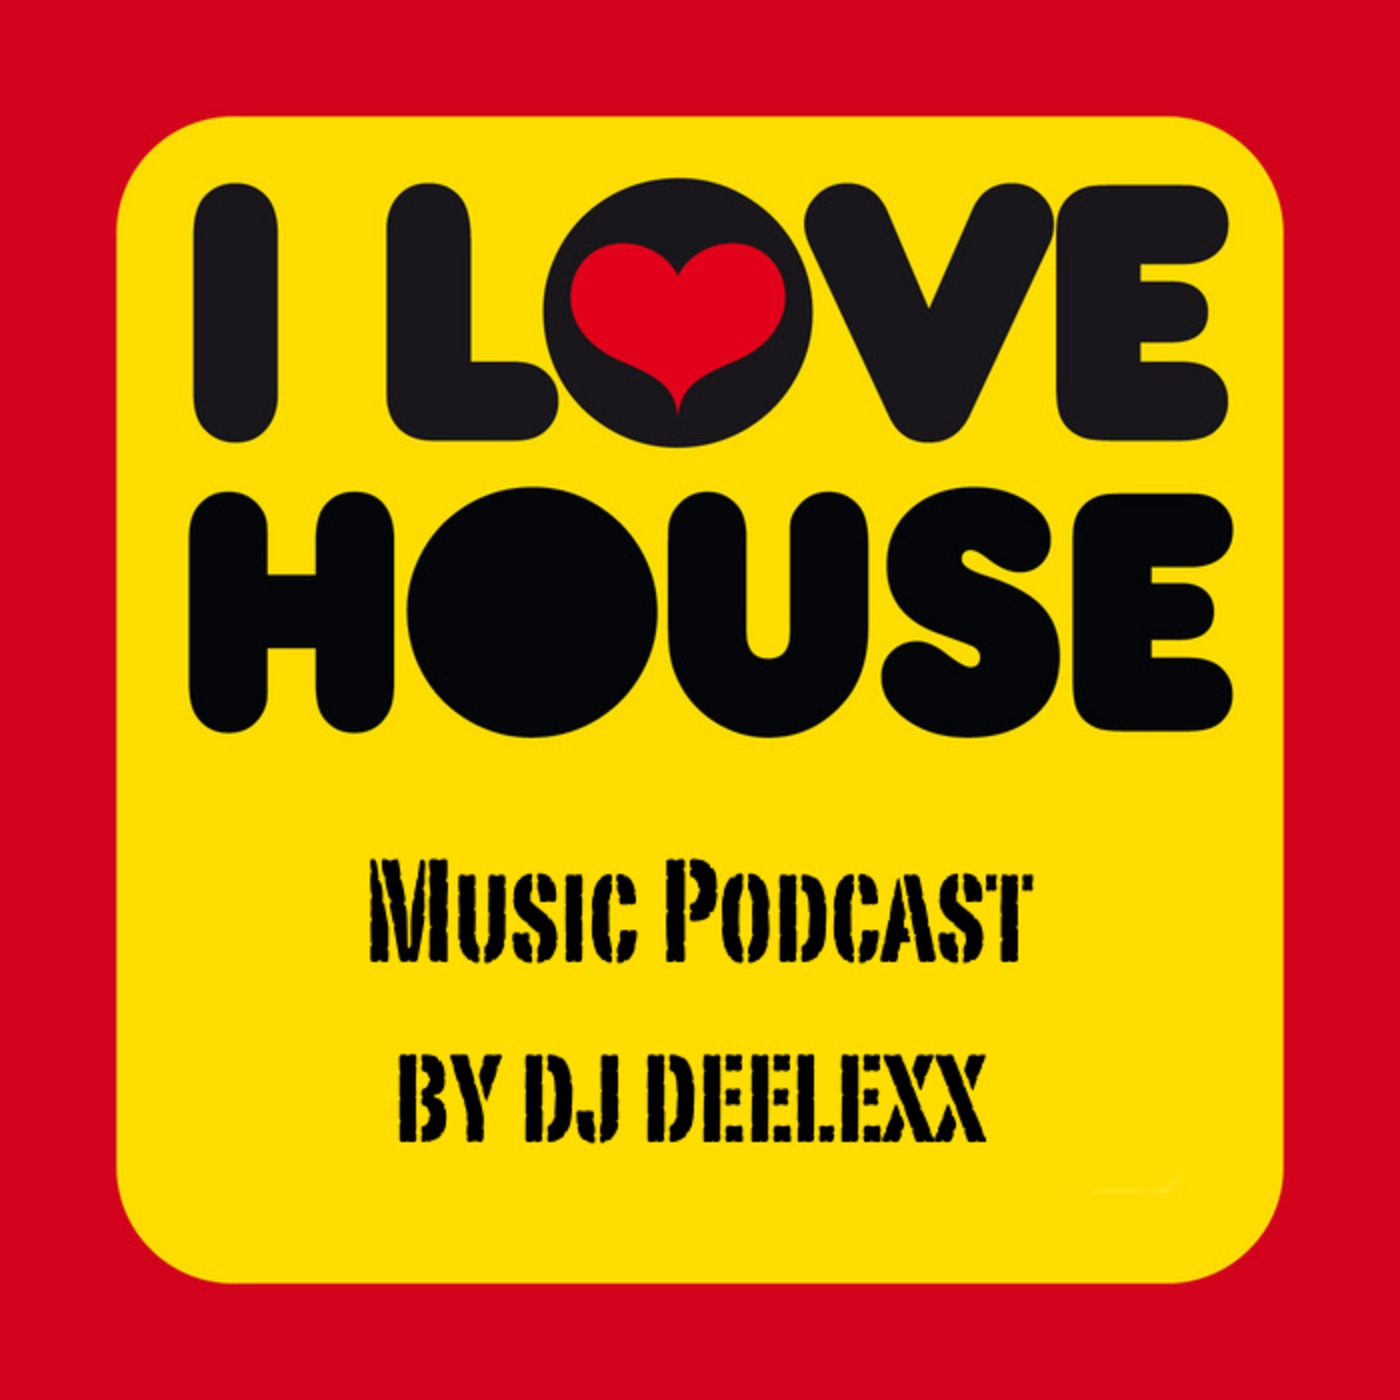 DJ Deelexx! I LOVE HOUSE! Music Podcast!